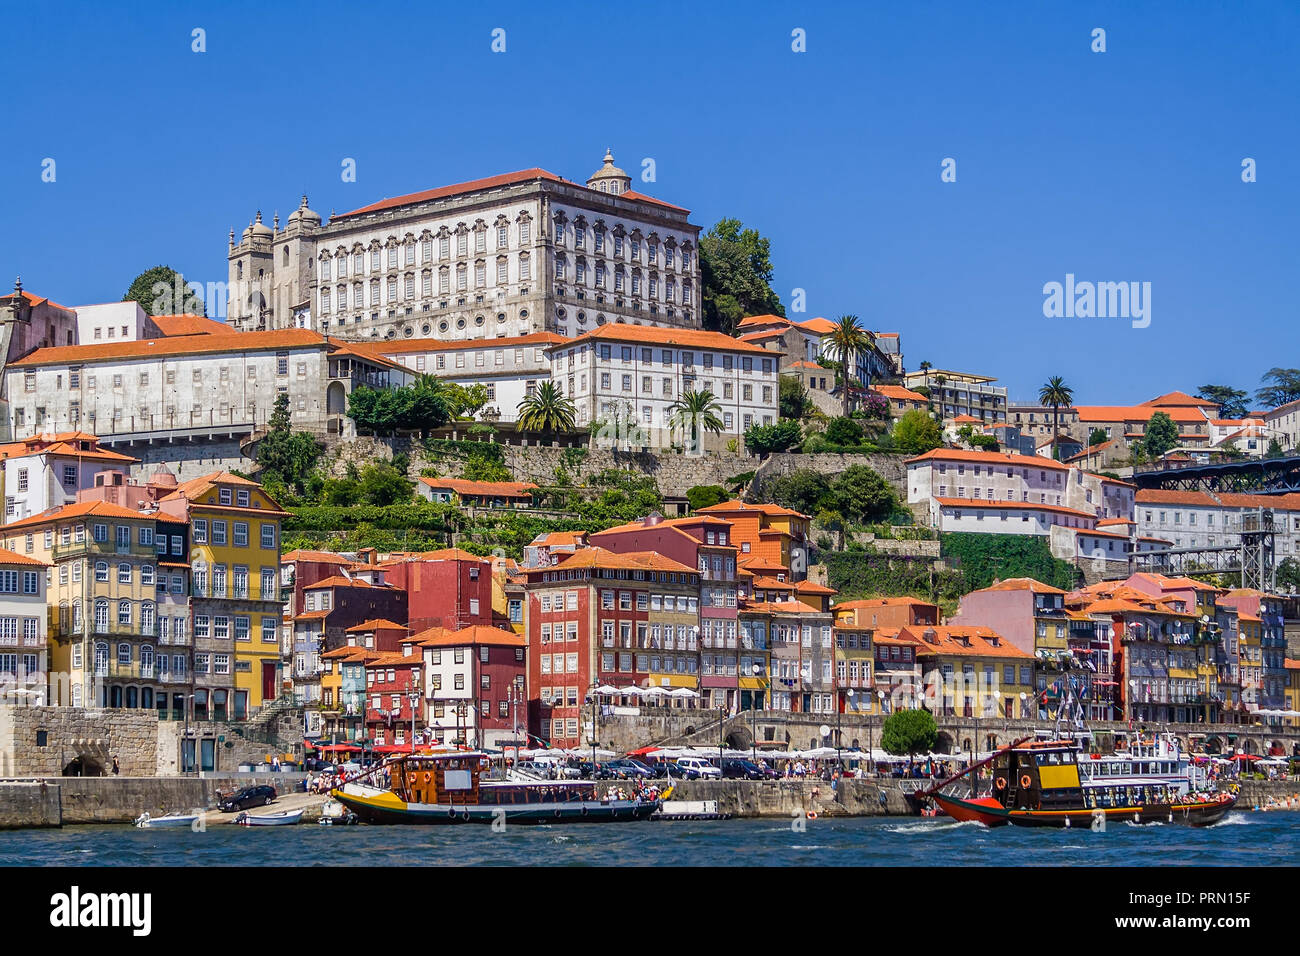 Porto or Oporto, Portugal. Ribeira District with typical colorful buildings, the Douro River and cruise ships for tourists in of Rabelo boats shape - Stock Image